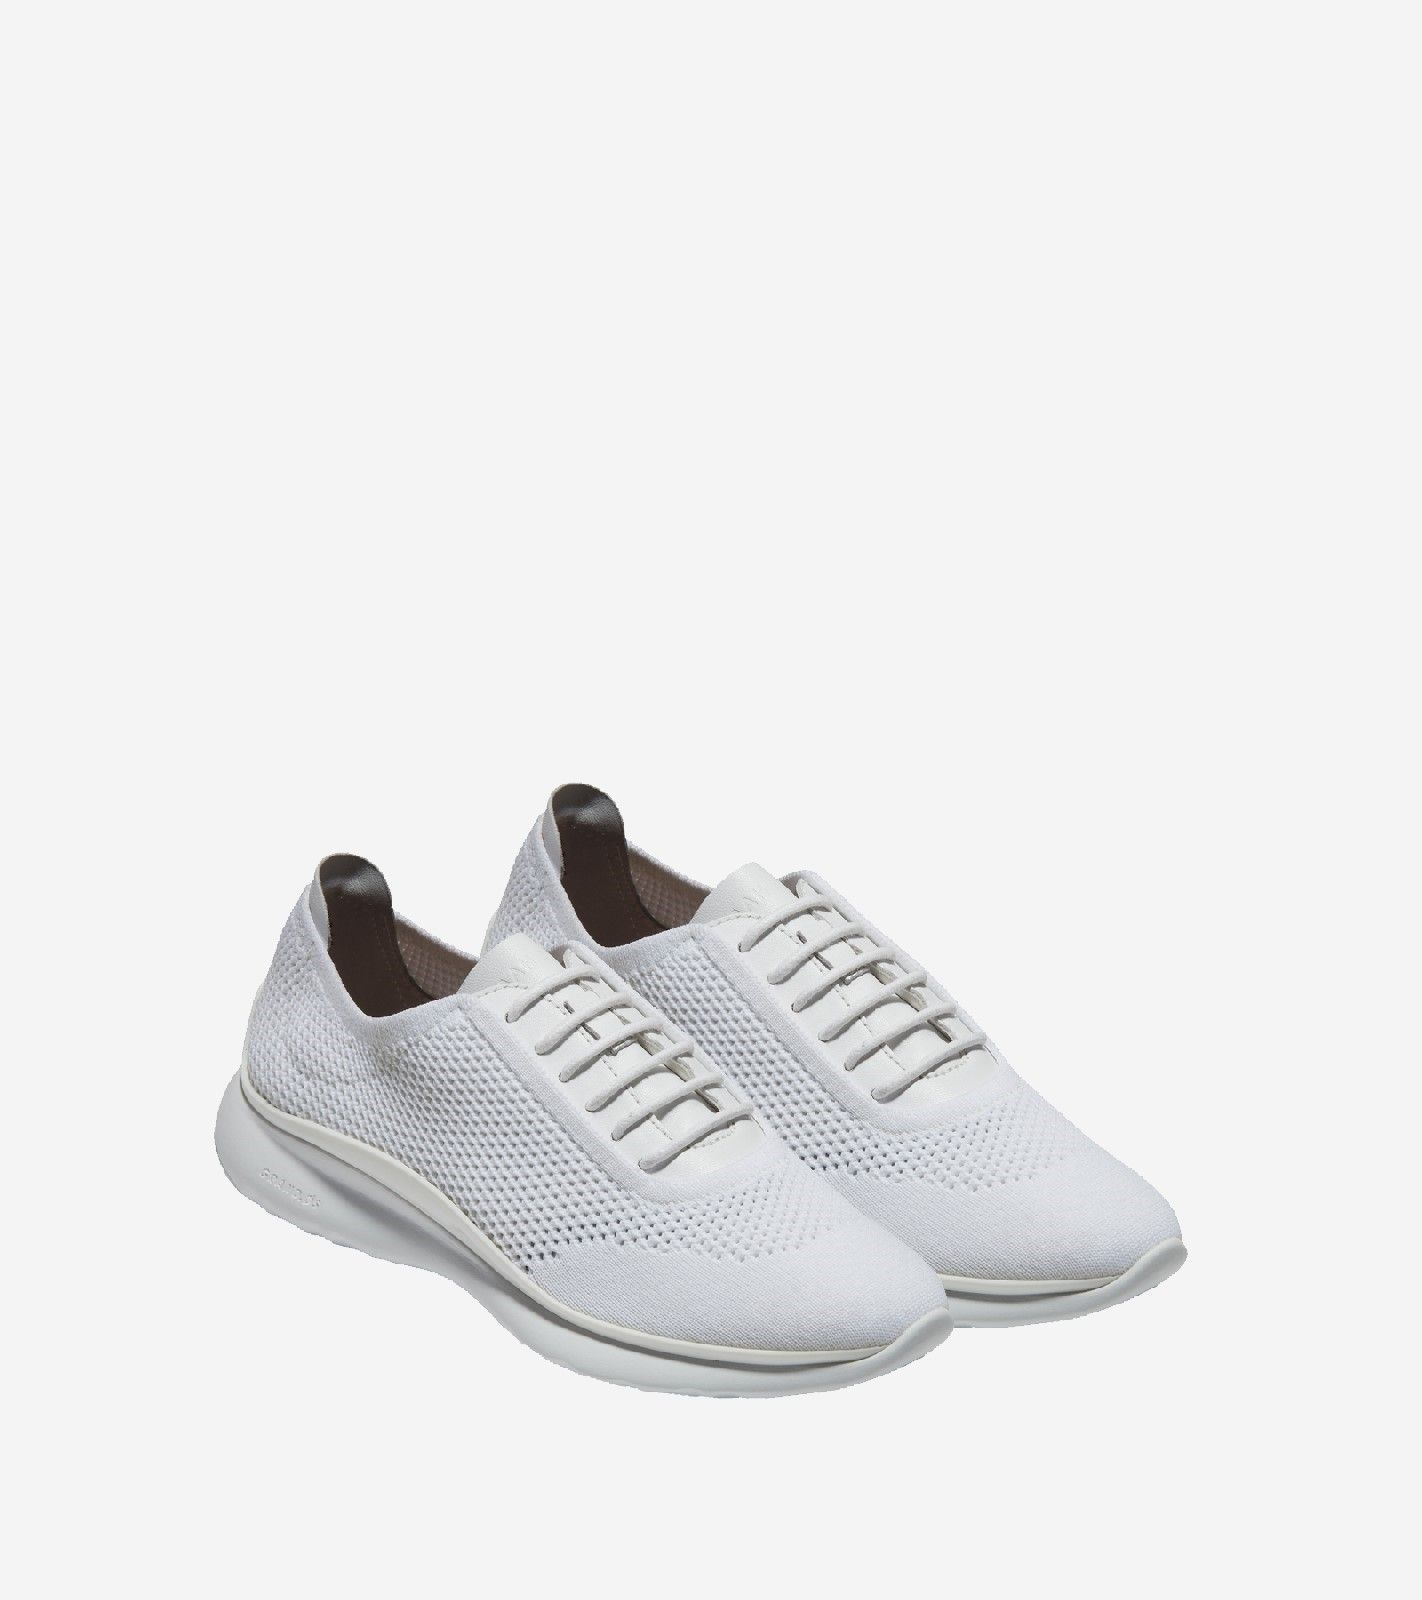 3.ZEROGRAND Stitchlite Oxford Lace Up Shoe